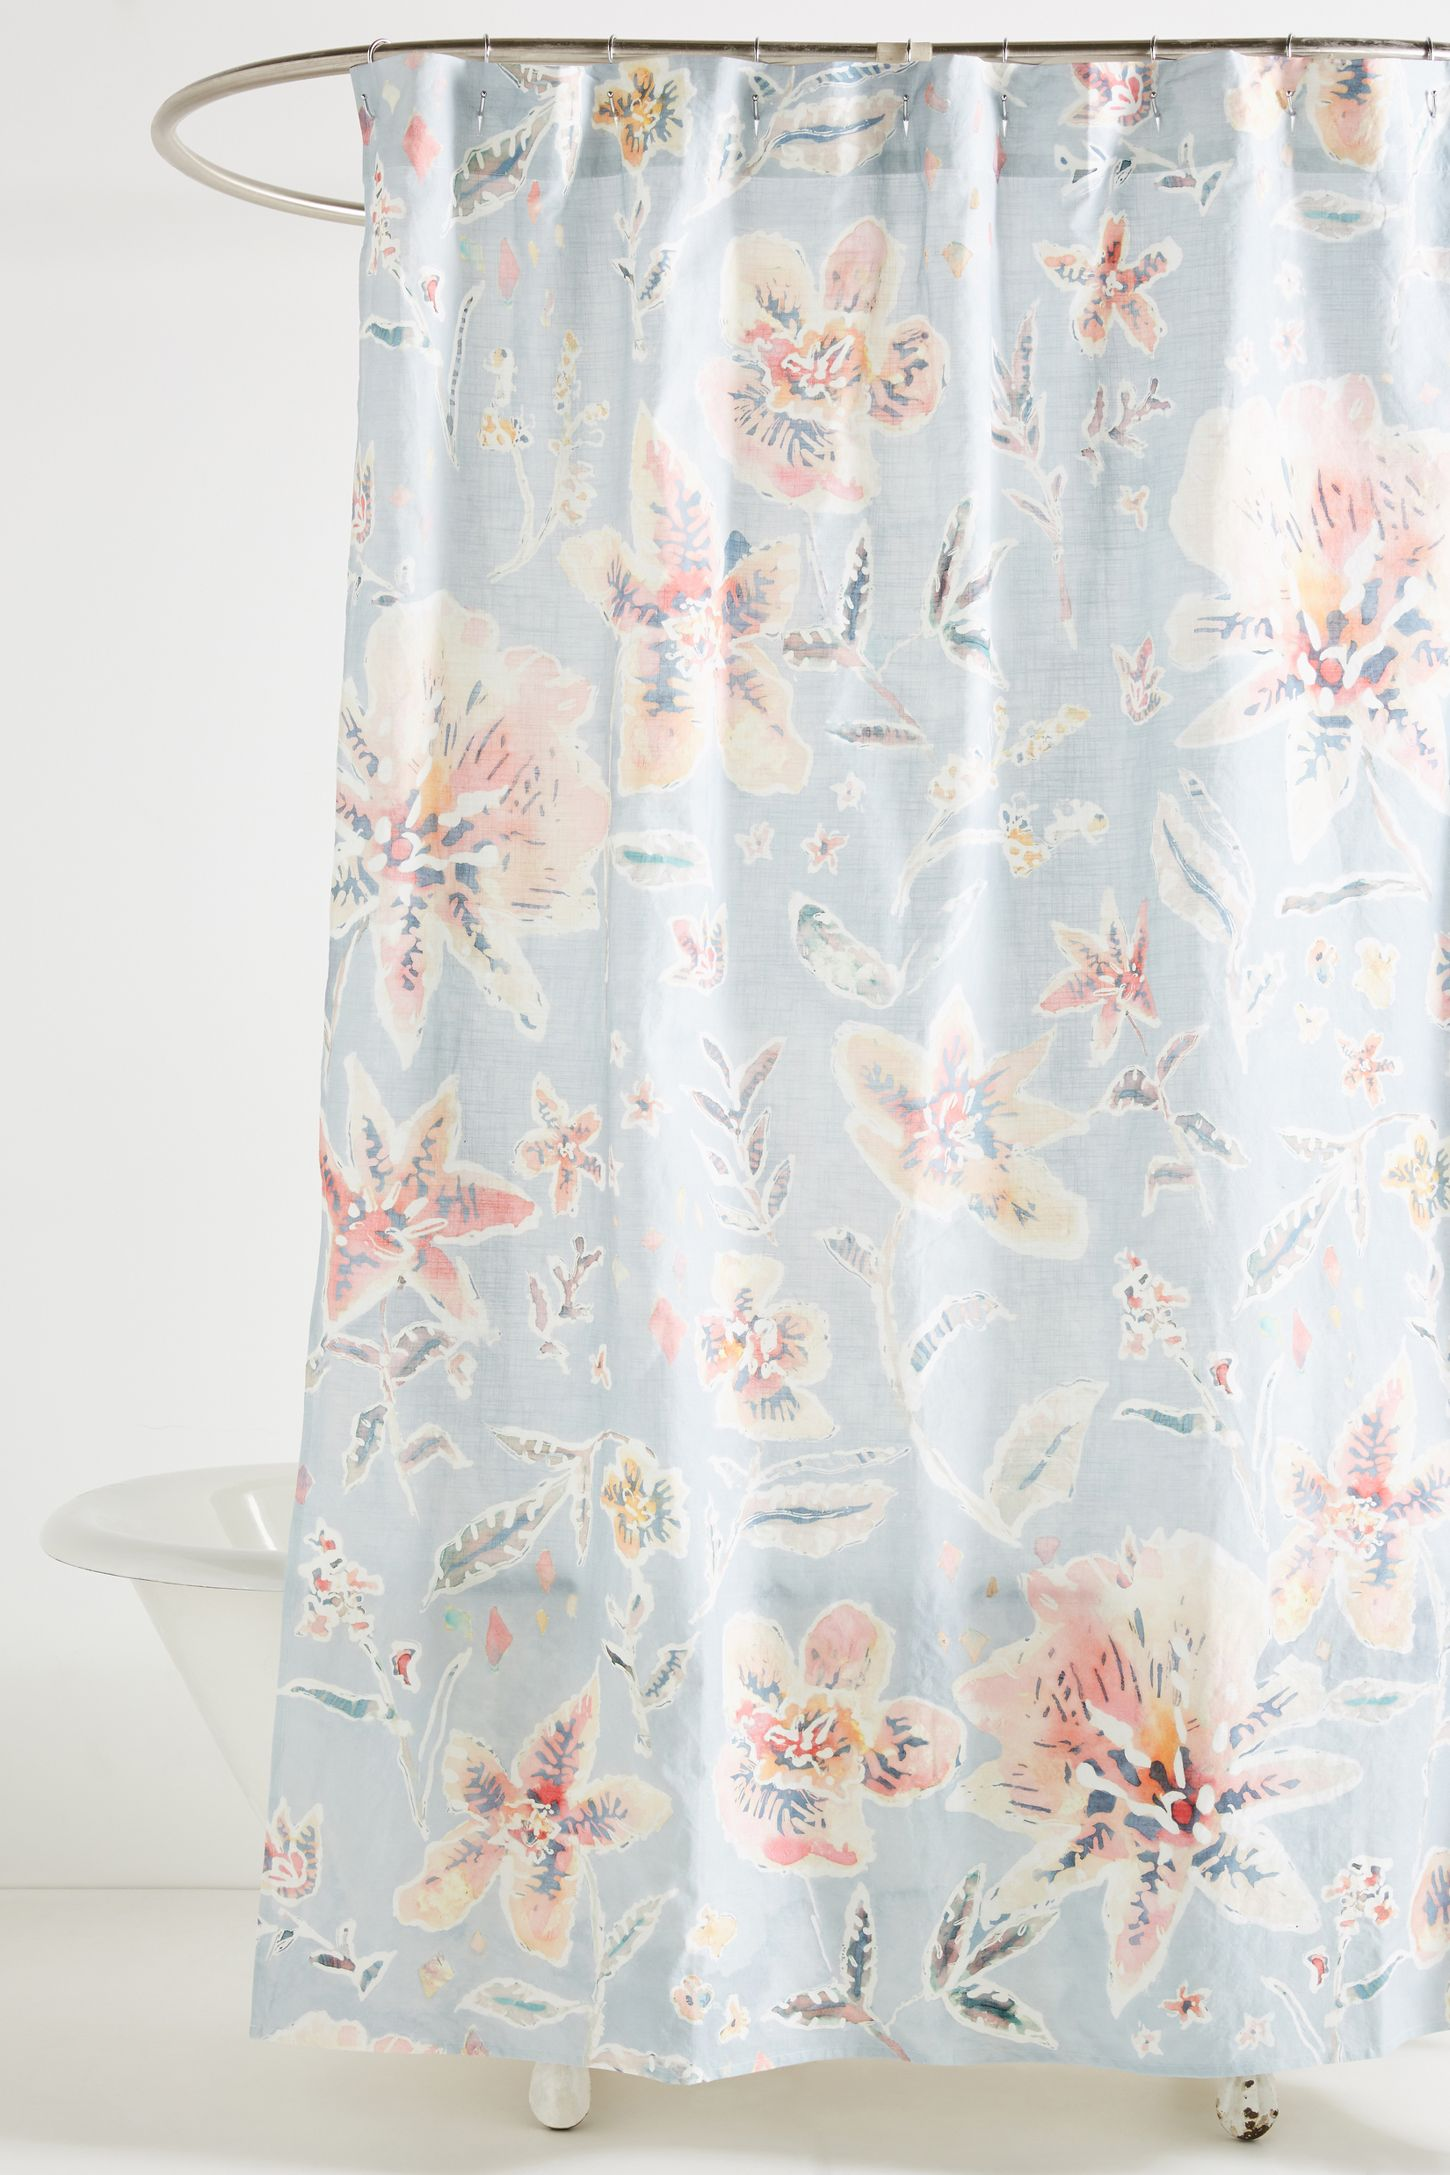 Unique & Boho Shower Curtains & Liners | Anthropologie